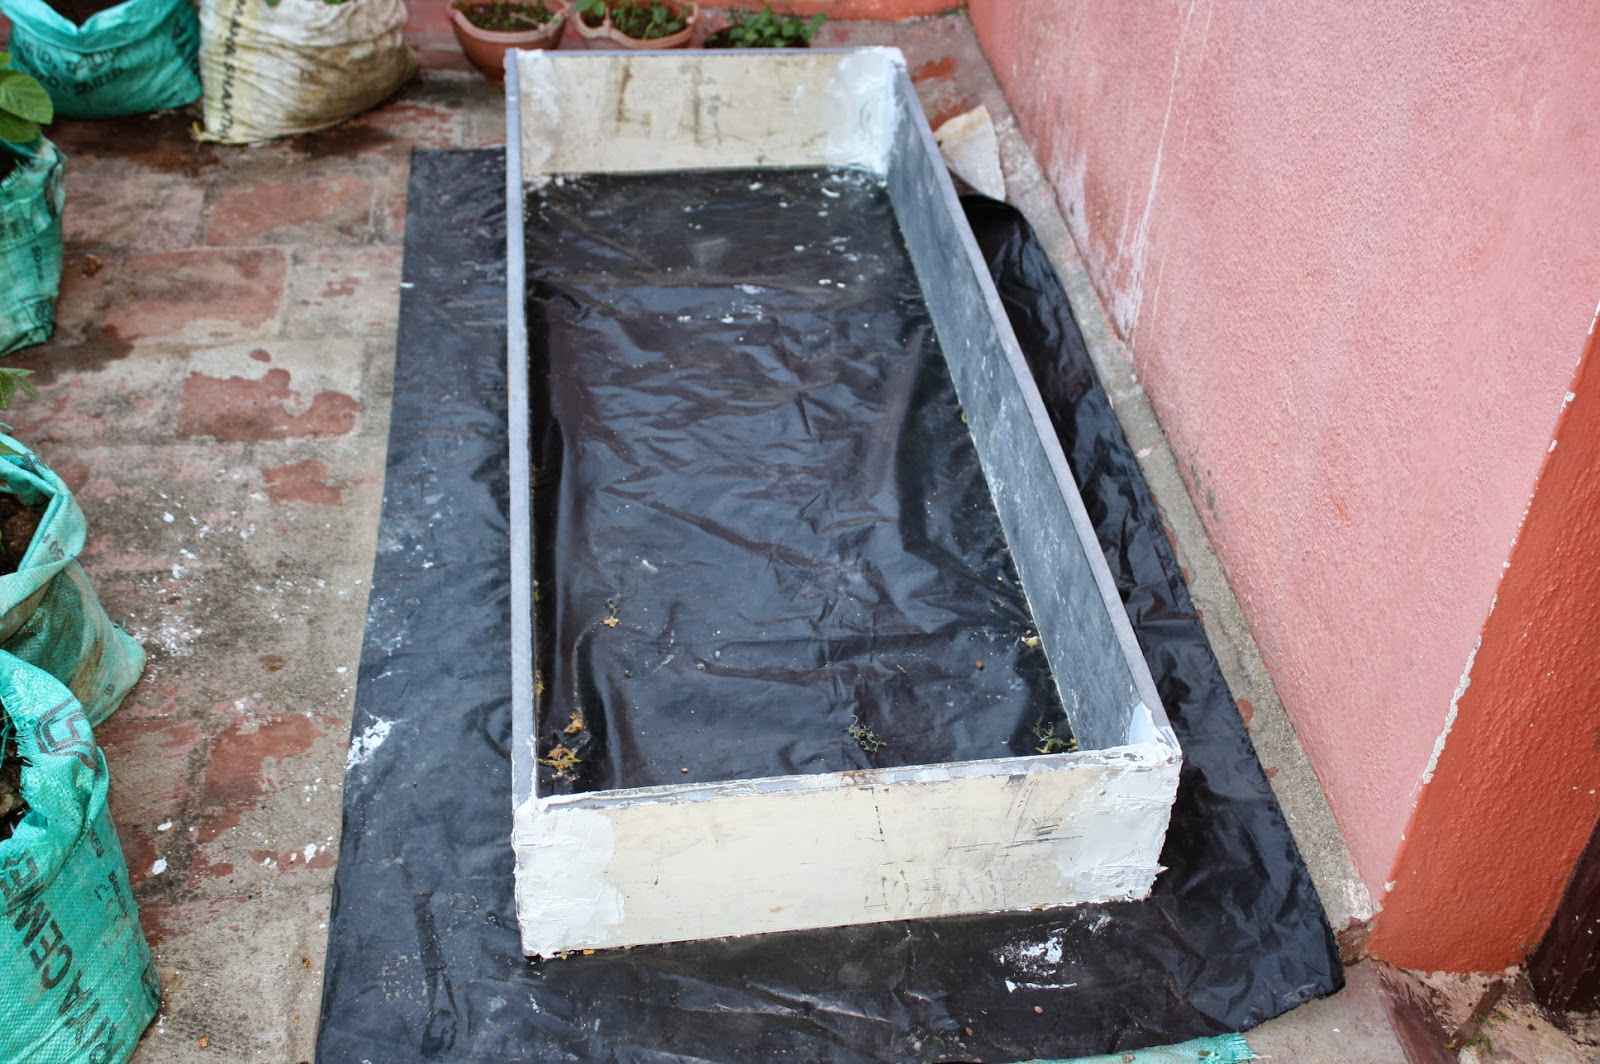 Terrace gardening what i made in my garden i purchased black colour plastic rolling sheets from broadway market in george town chennai rs13 per mtr6 ft width after visiting so many shops solutioingenieria Images